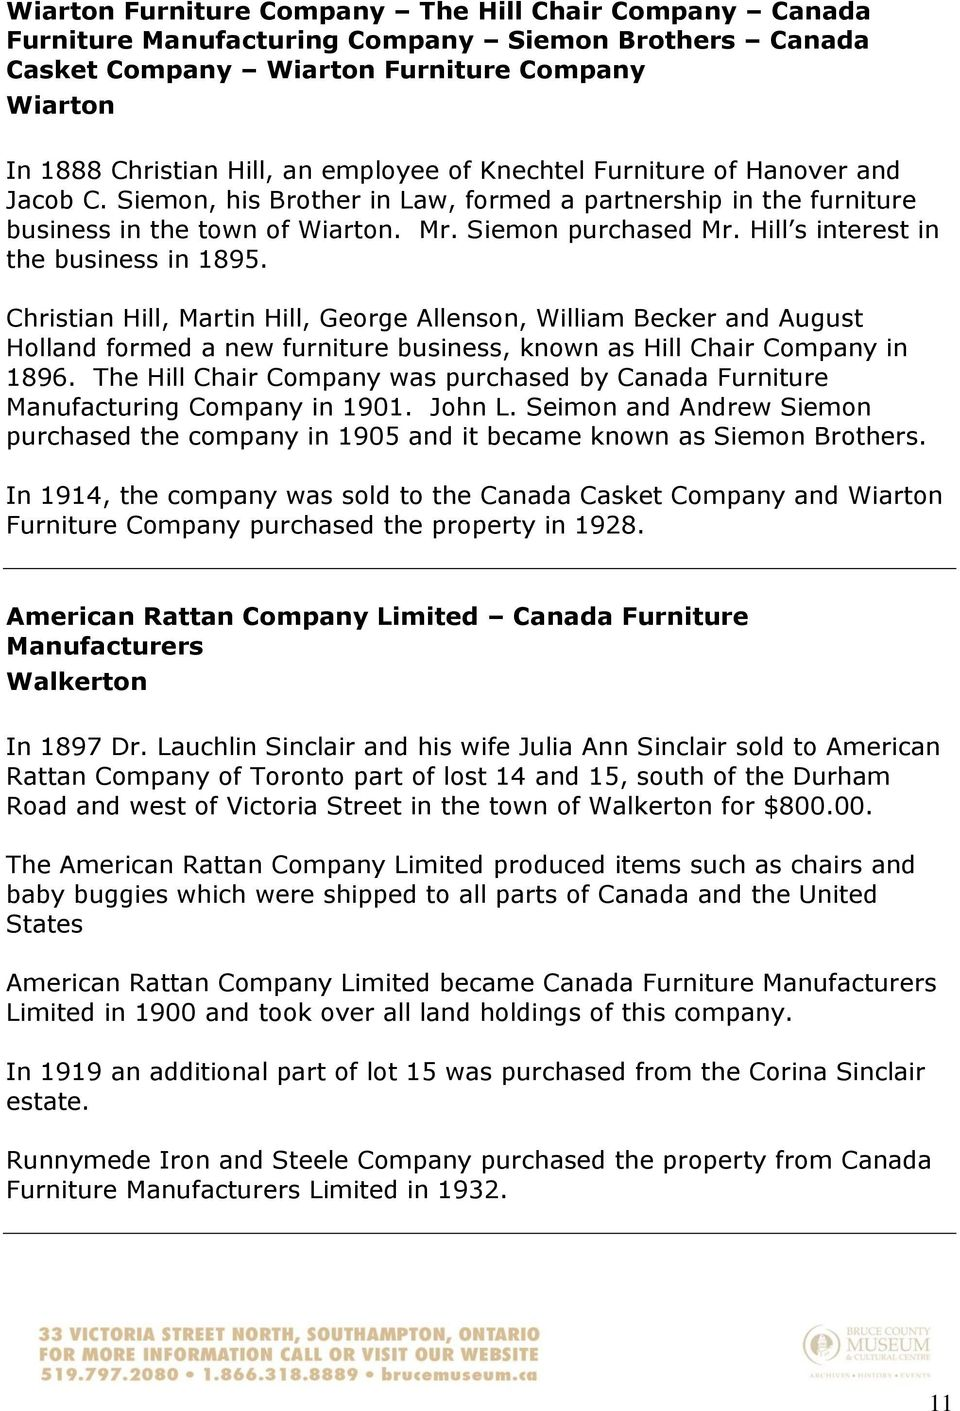 Furniture Factories Information Sheet - PDF